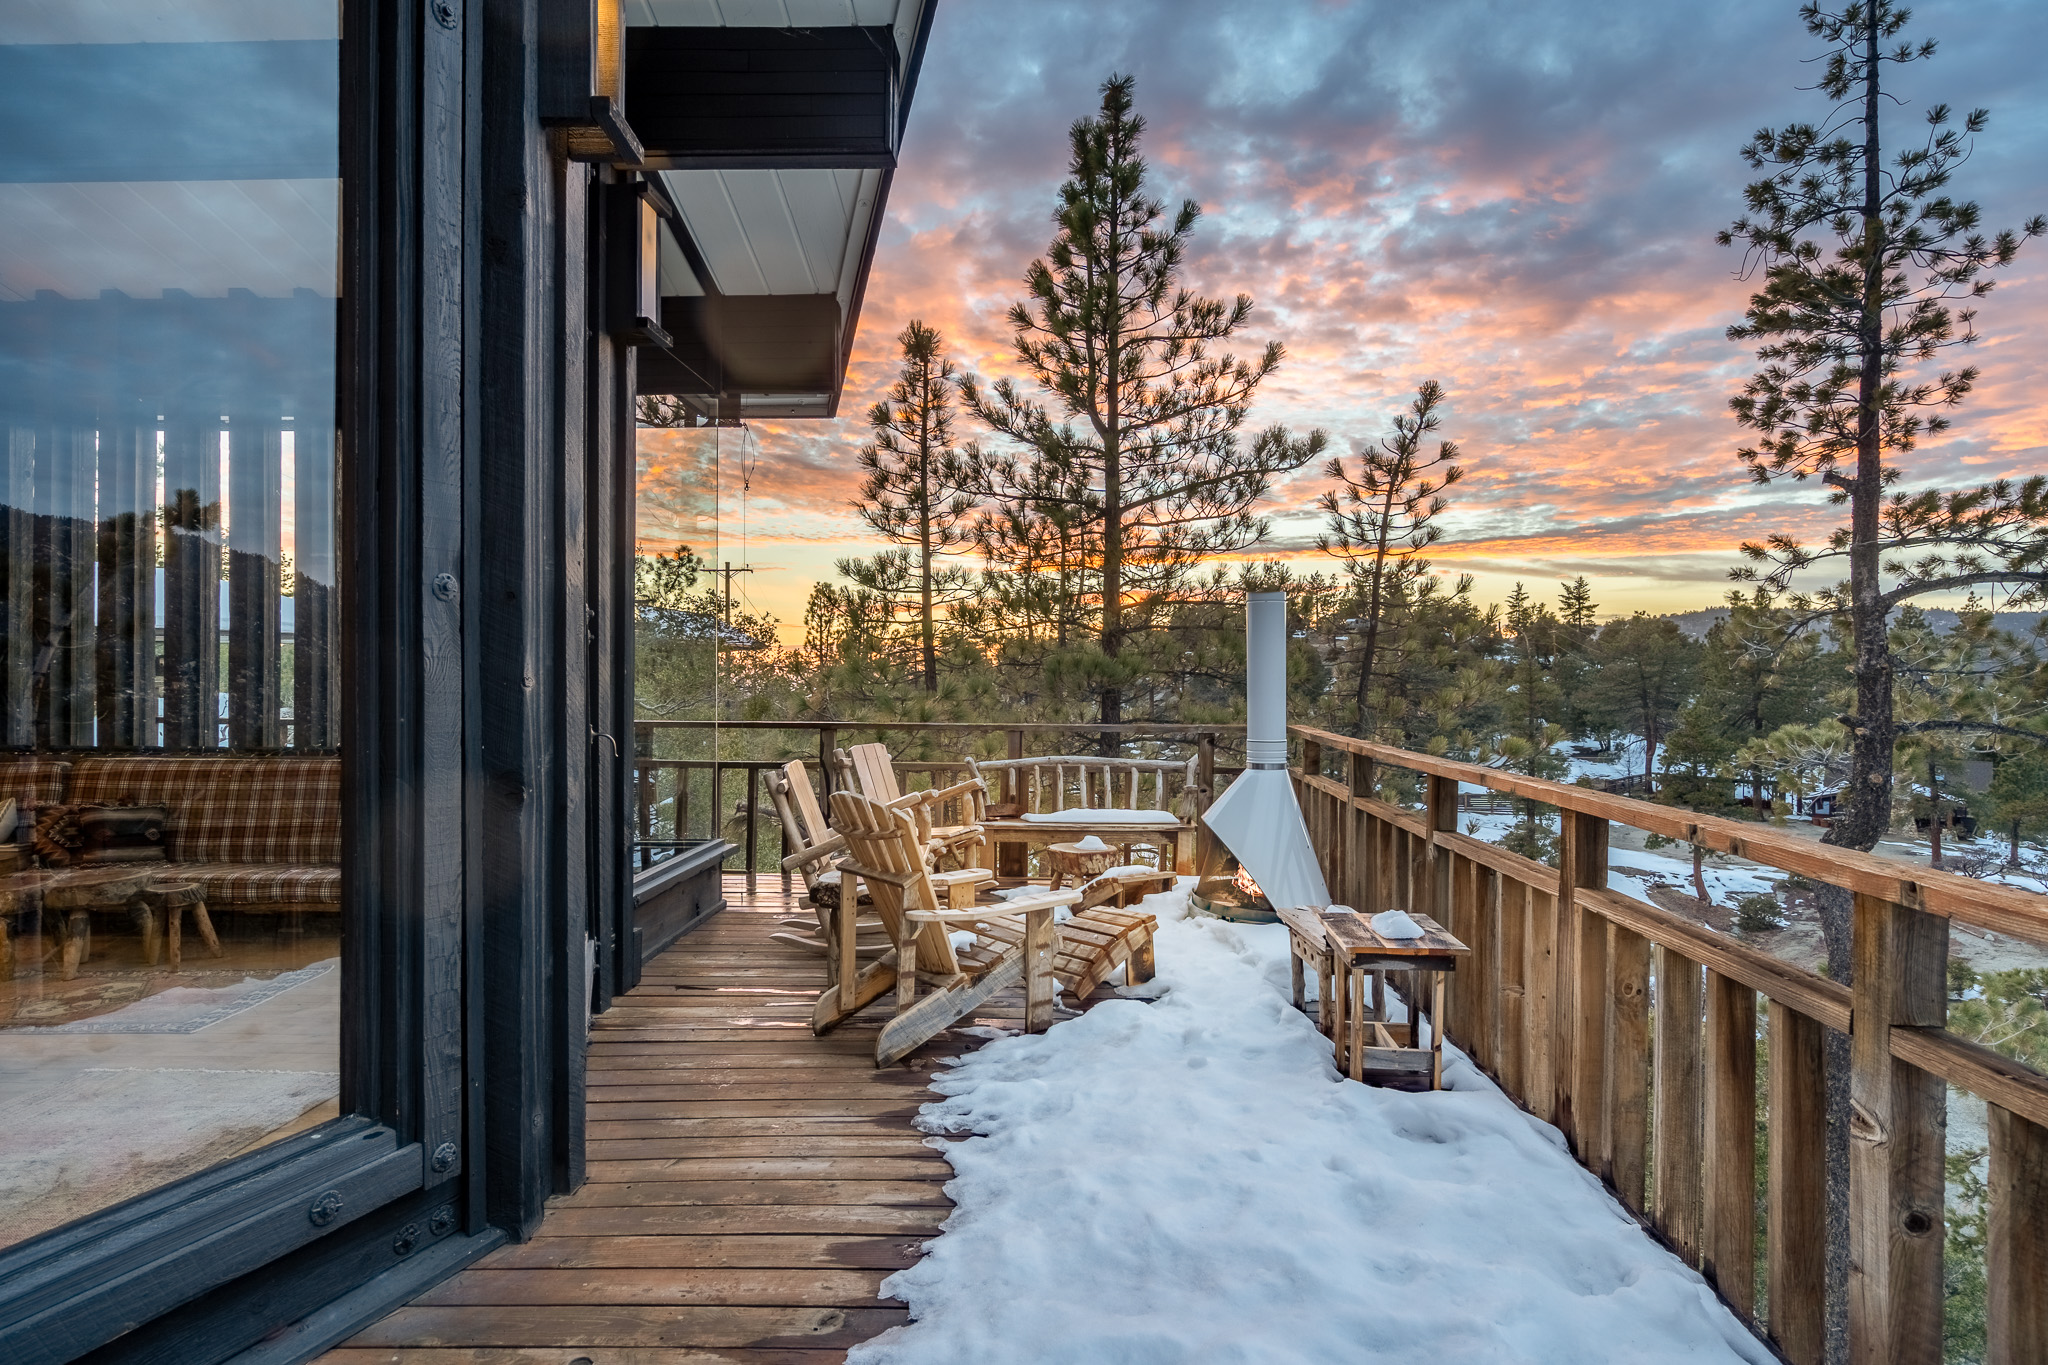 Sold 2021 Laura Represented Seller -  Idyllwild, CA 92549